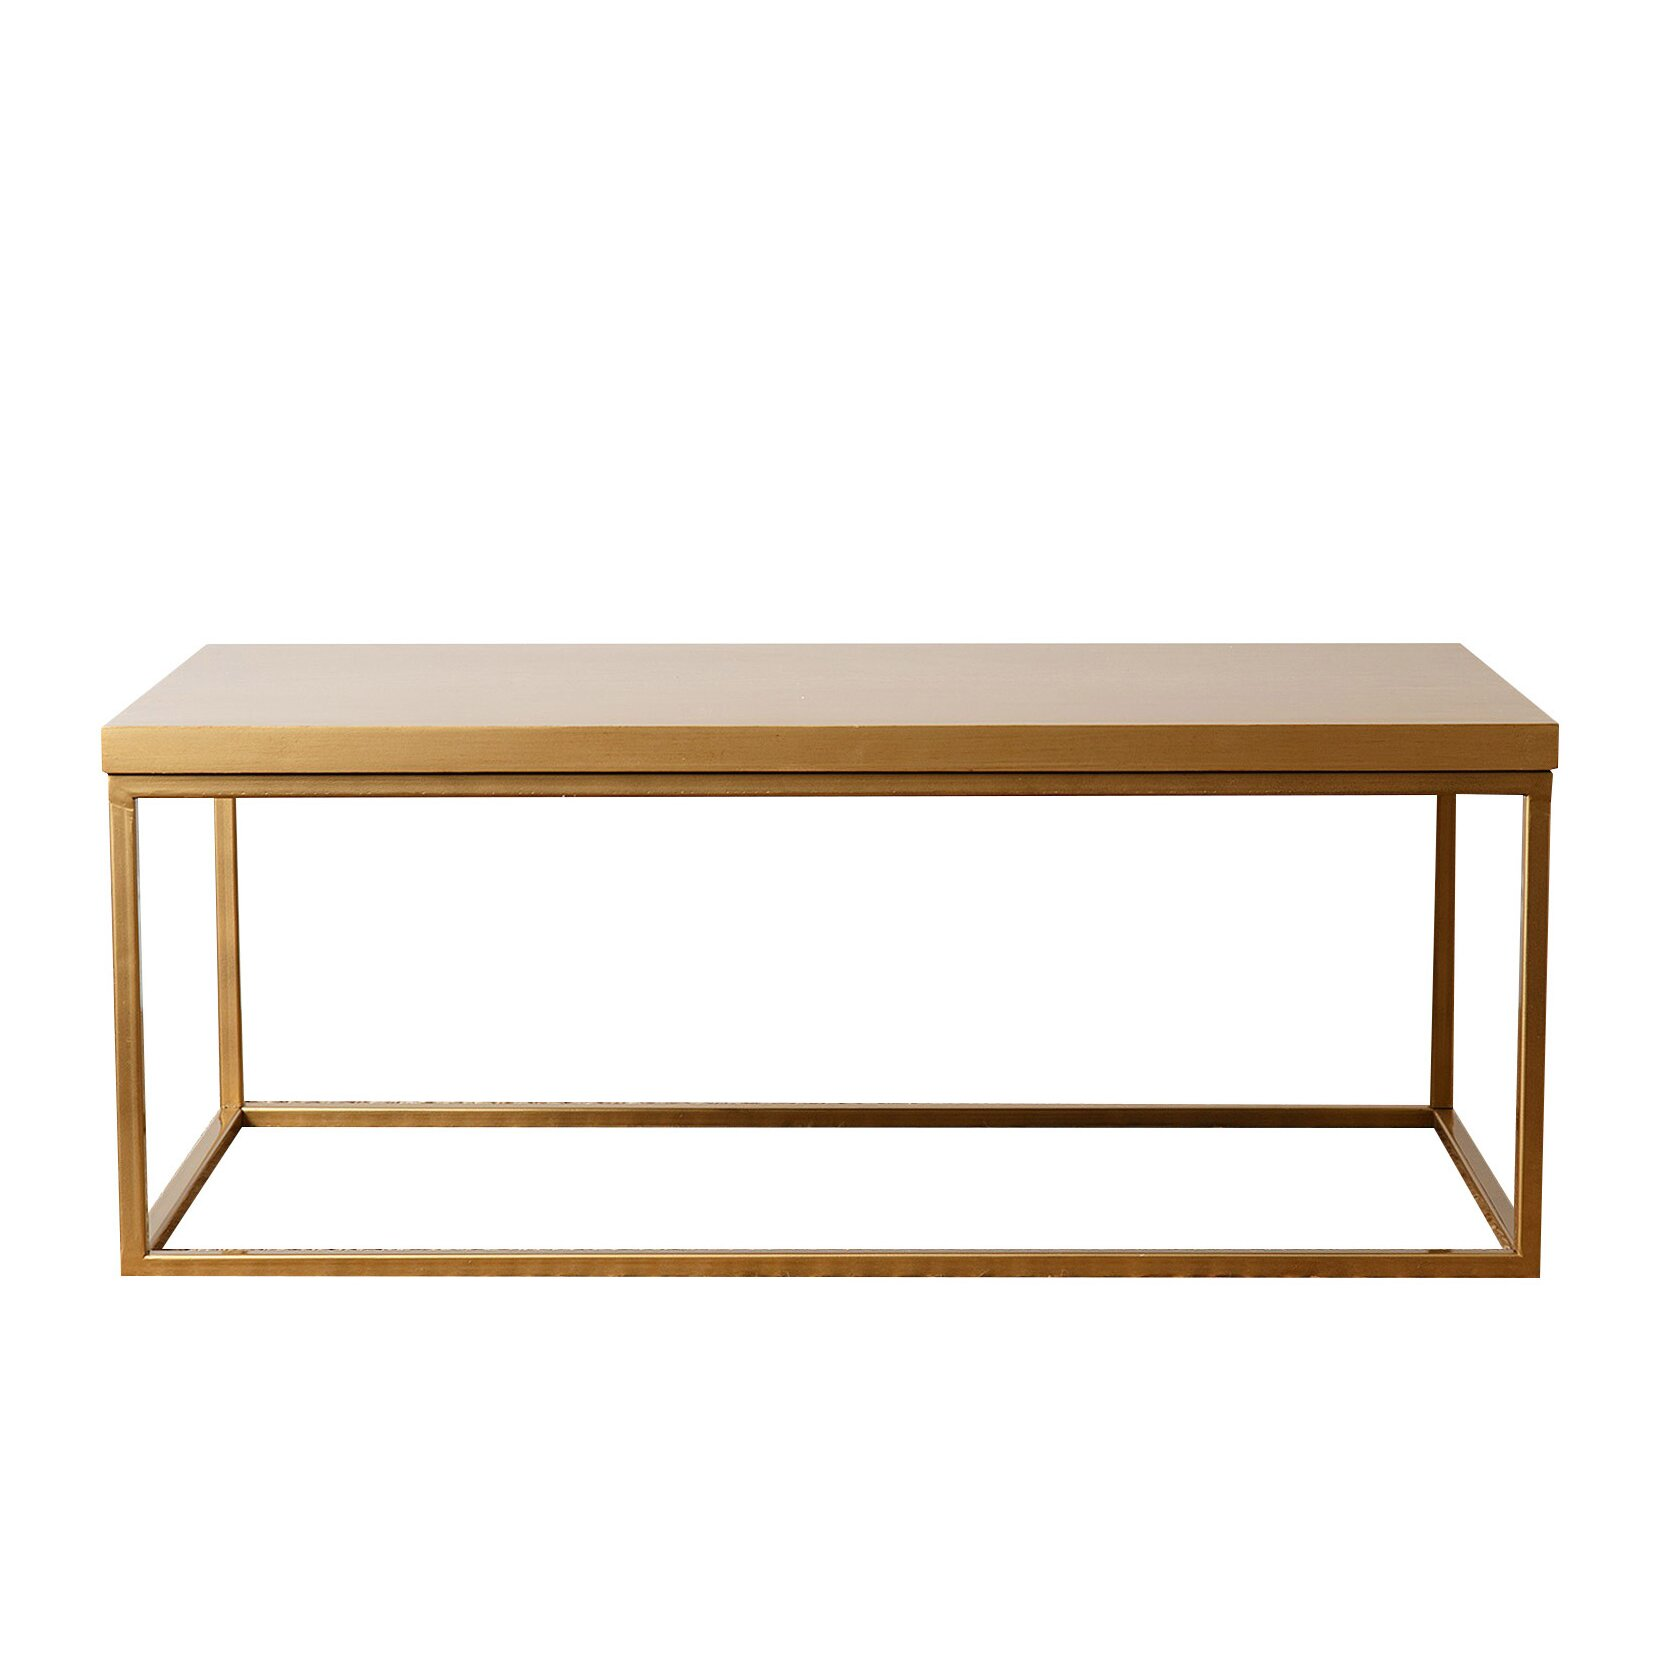 Mercer41 Hecht Coffee Table Reviews Wayfair